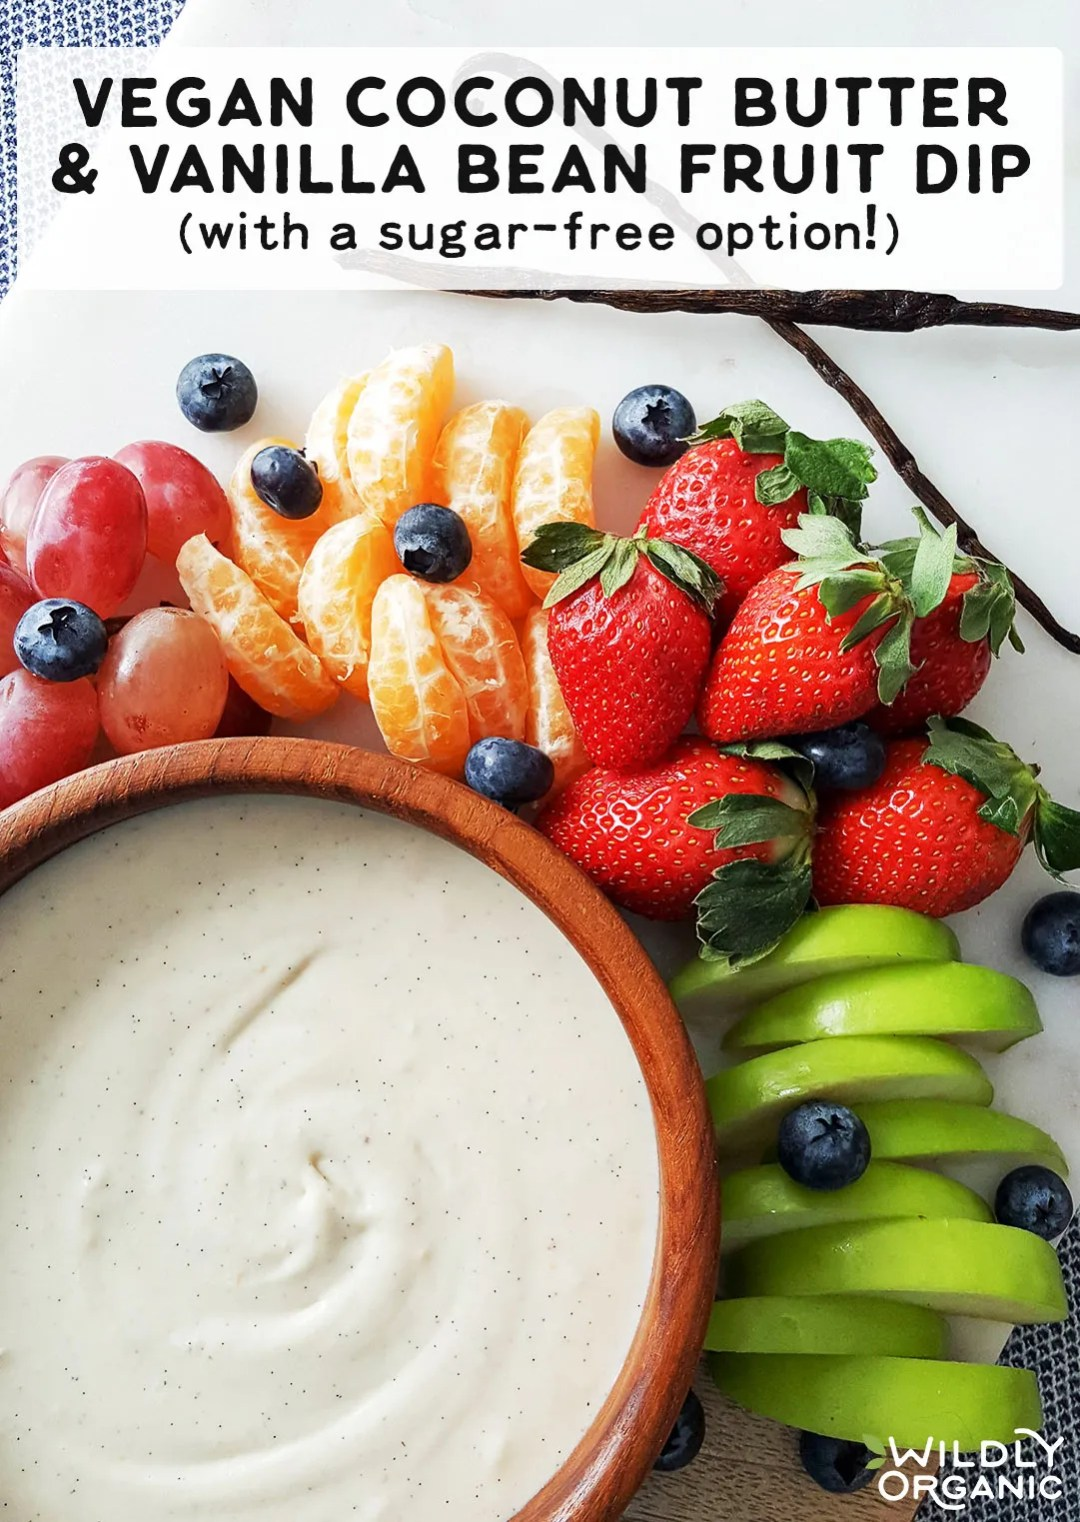 Most of the time, fruit dips are loaded with little more than sugar. Avoid that and try this delicious, healthy Vegan Coconut Butter & Vanilla Bean Fruit Dip! With healthy fats and a sugar-free option, here's your new favorite way to enjoy fruit!